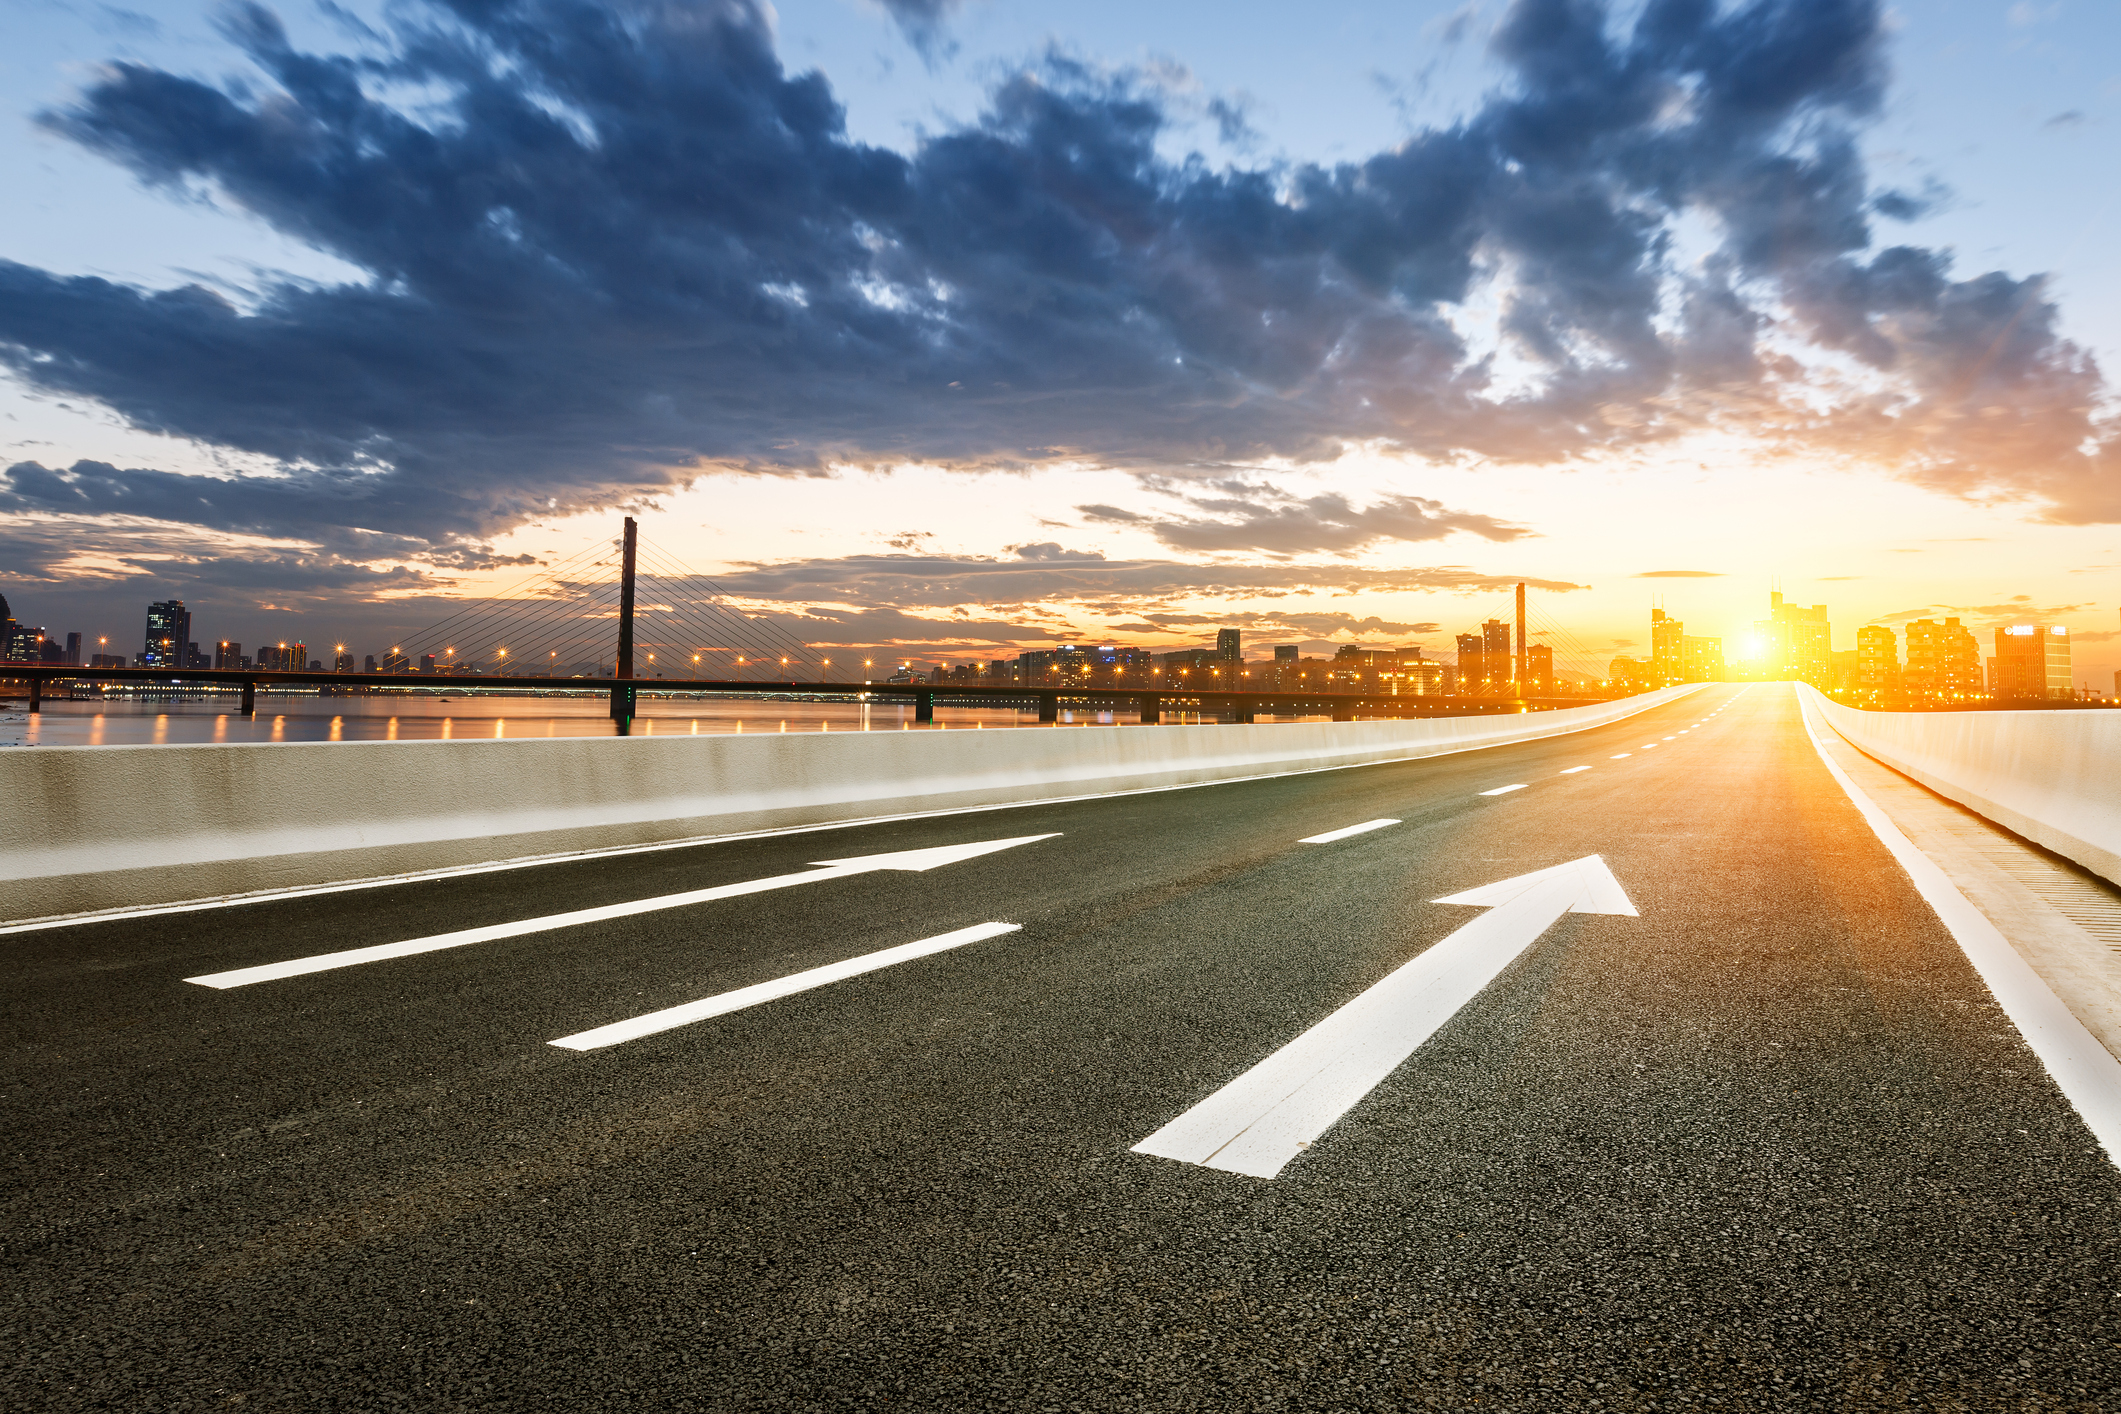 What challenges will the asphalt industry face?